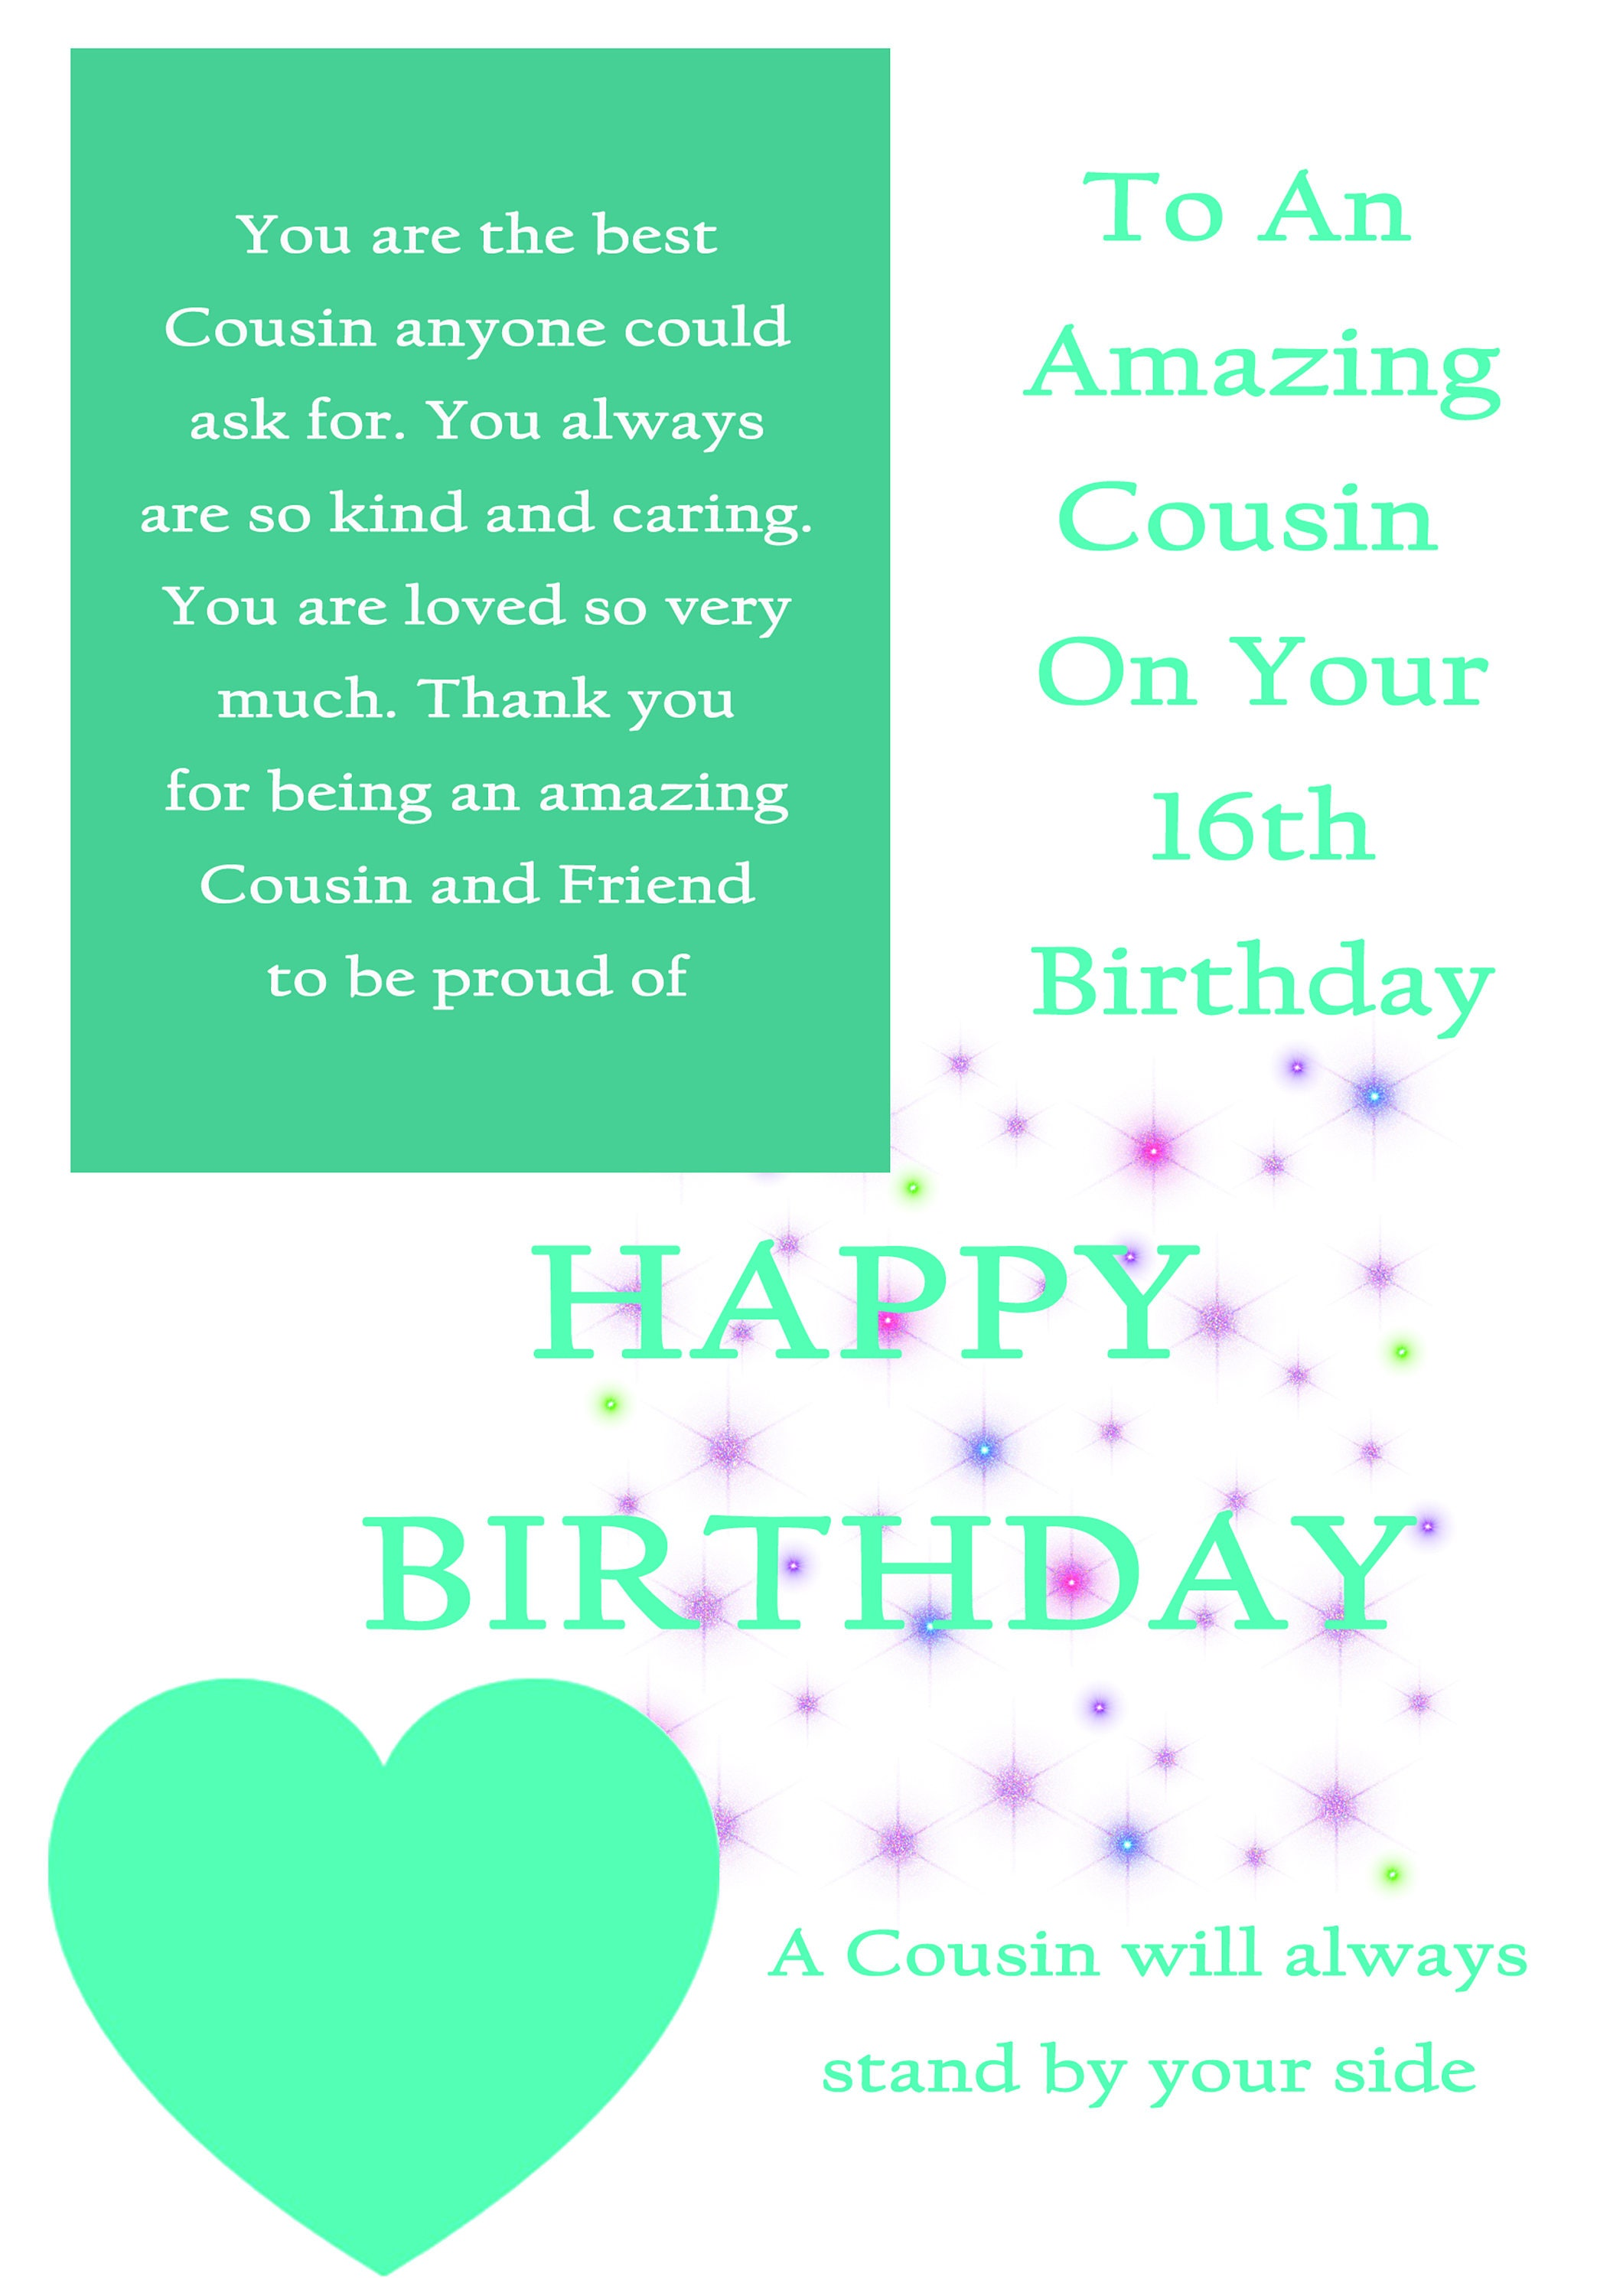 Cousin 16 Birthday Card With Removable Laminate Female